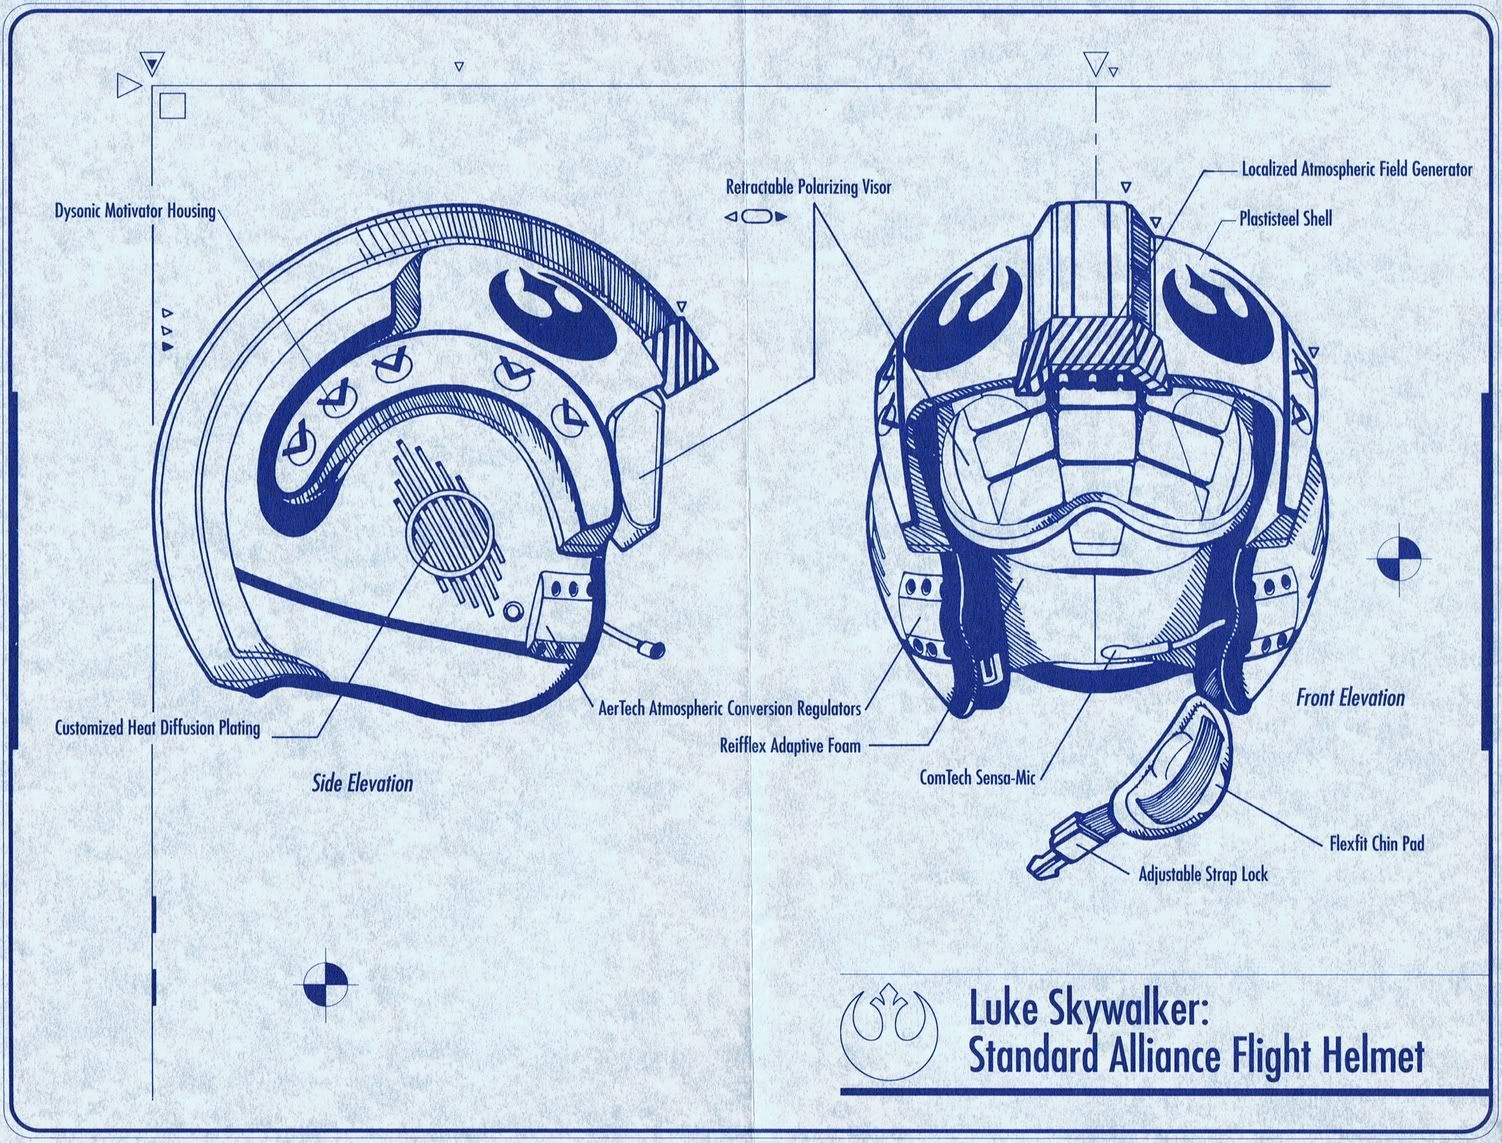 Flight Helmet Wookieepedia The Star Wars Wiki Star Wars Design Star Wars Helmet Star Wars Luke